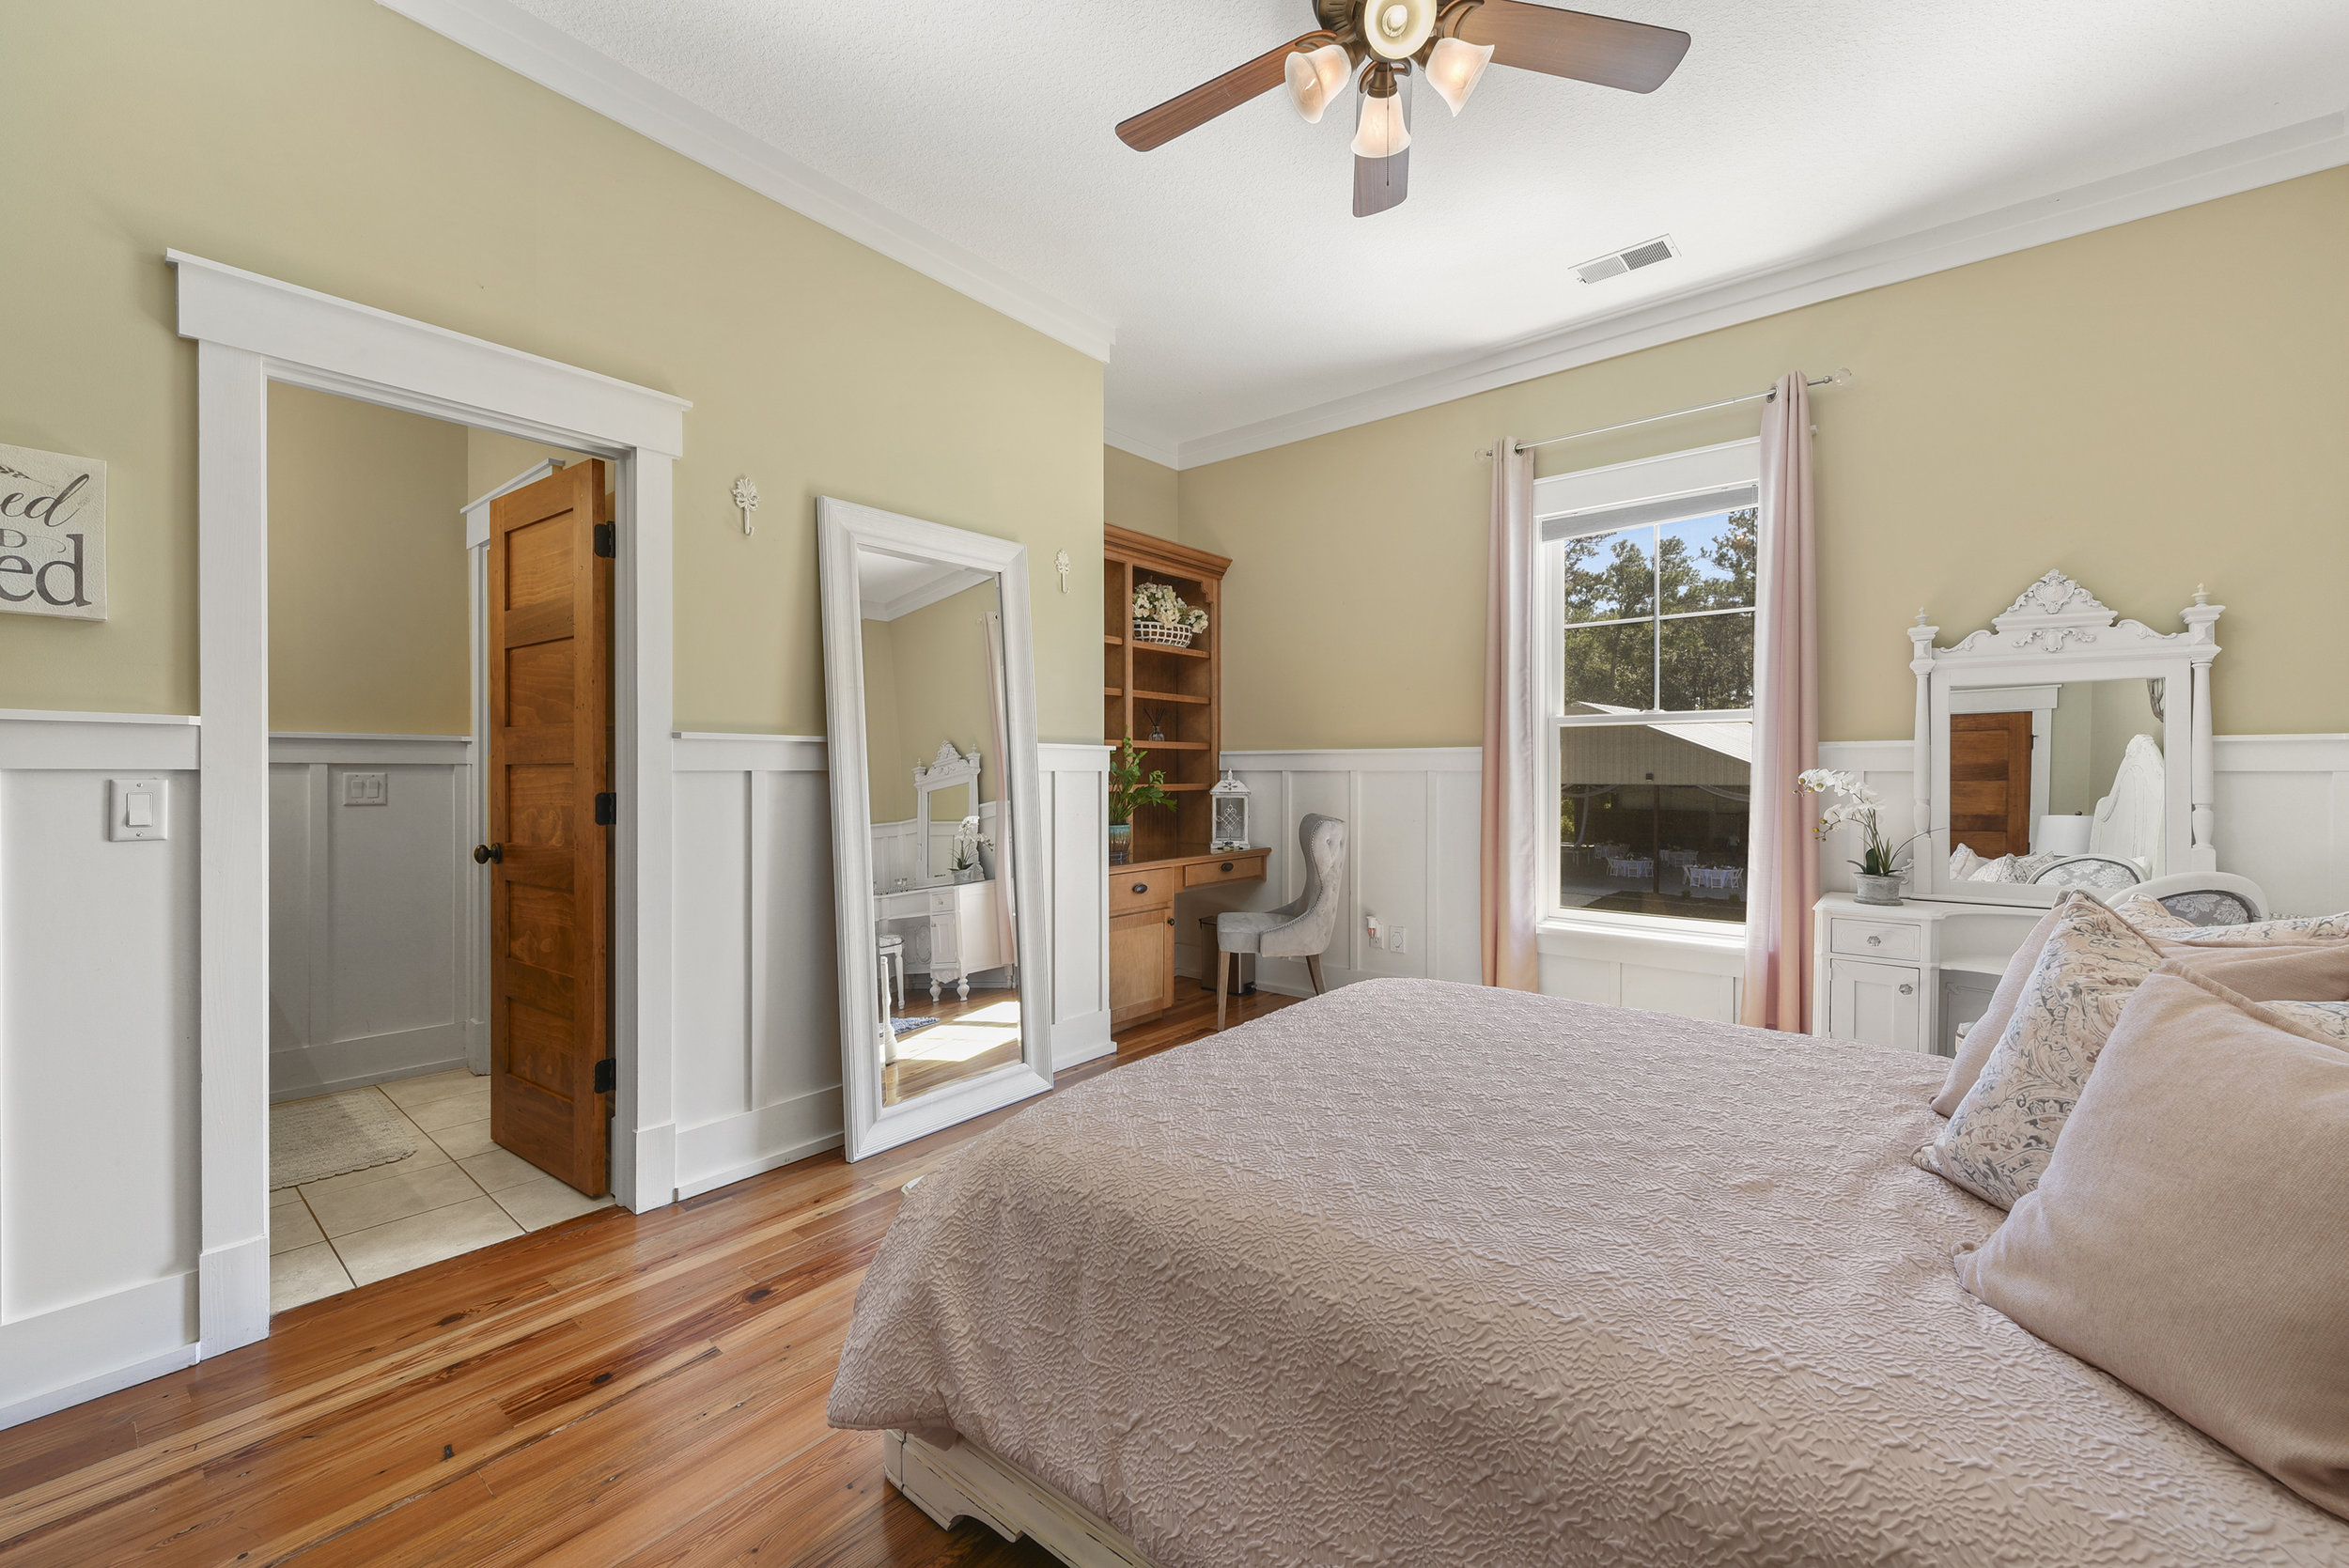 Bridal Suite - Two dressing rooms plus sitting areaGorgeous and comfortable